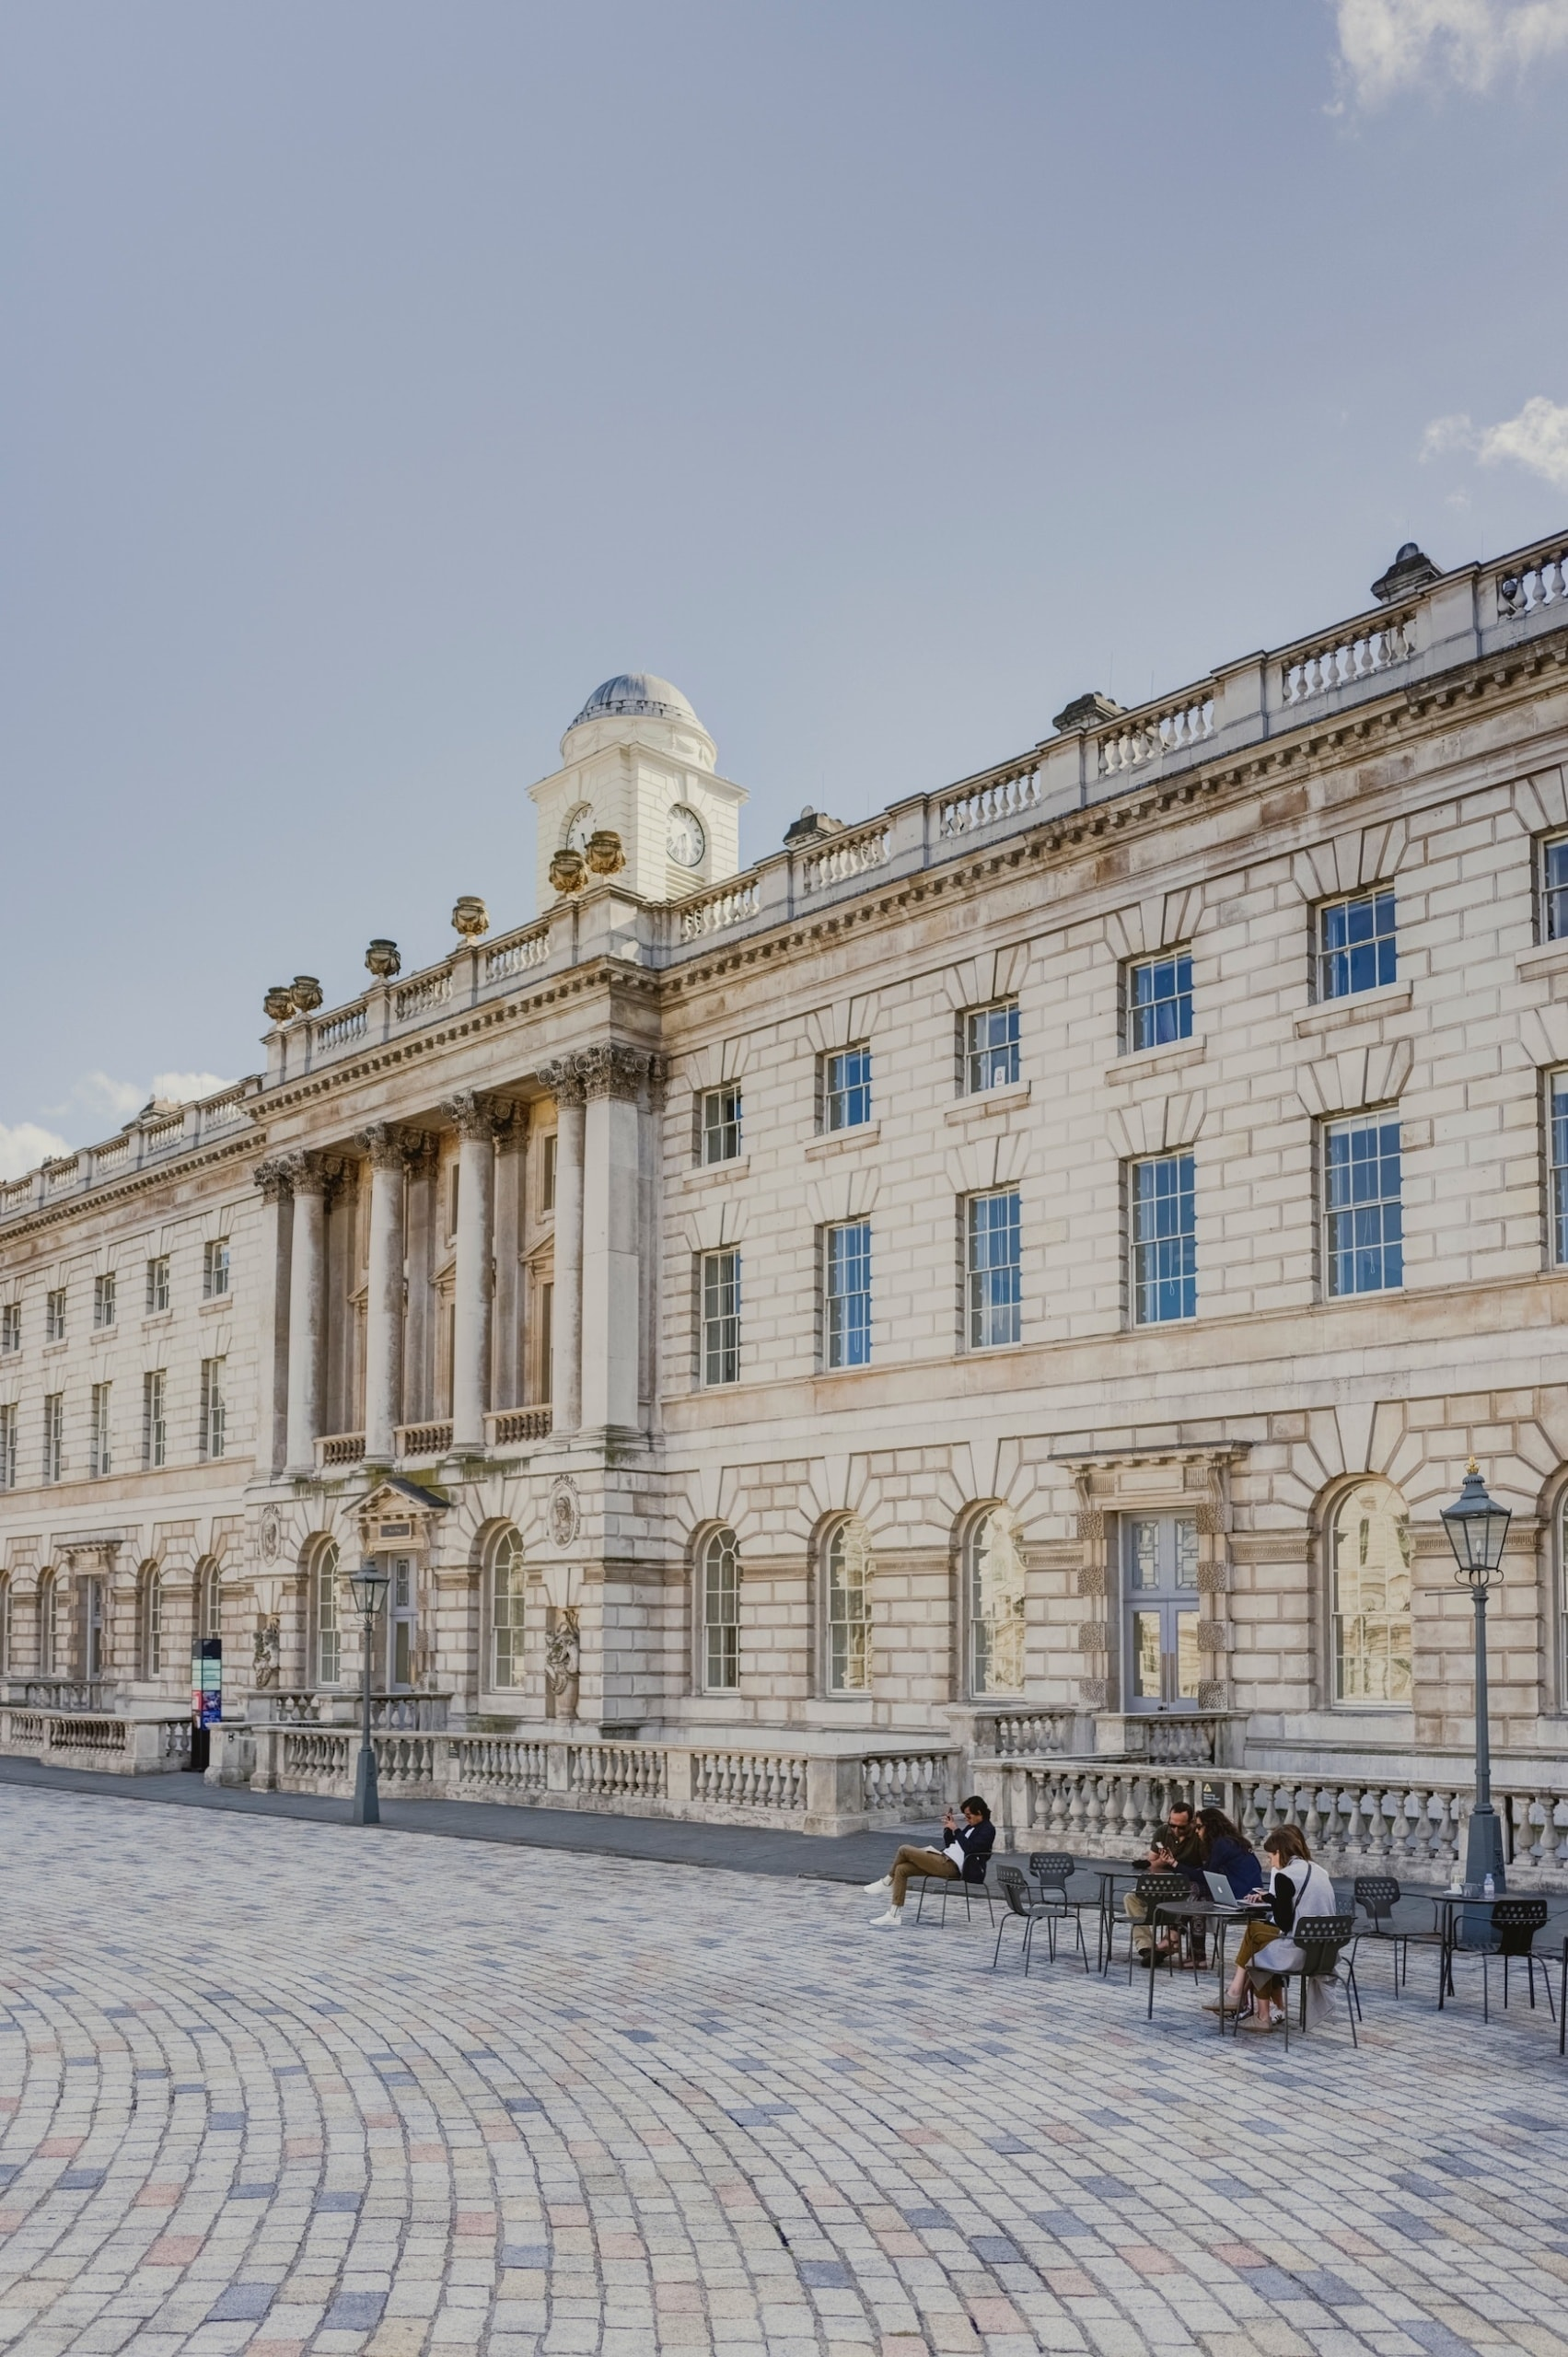 Das Somerset House in London